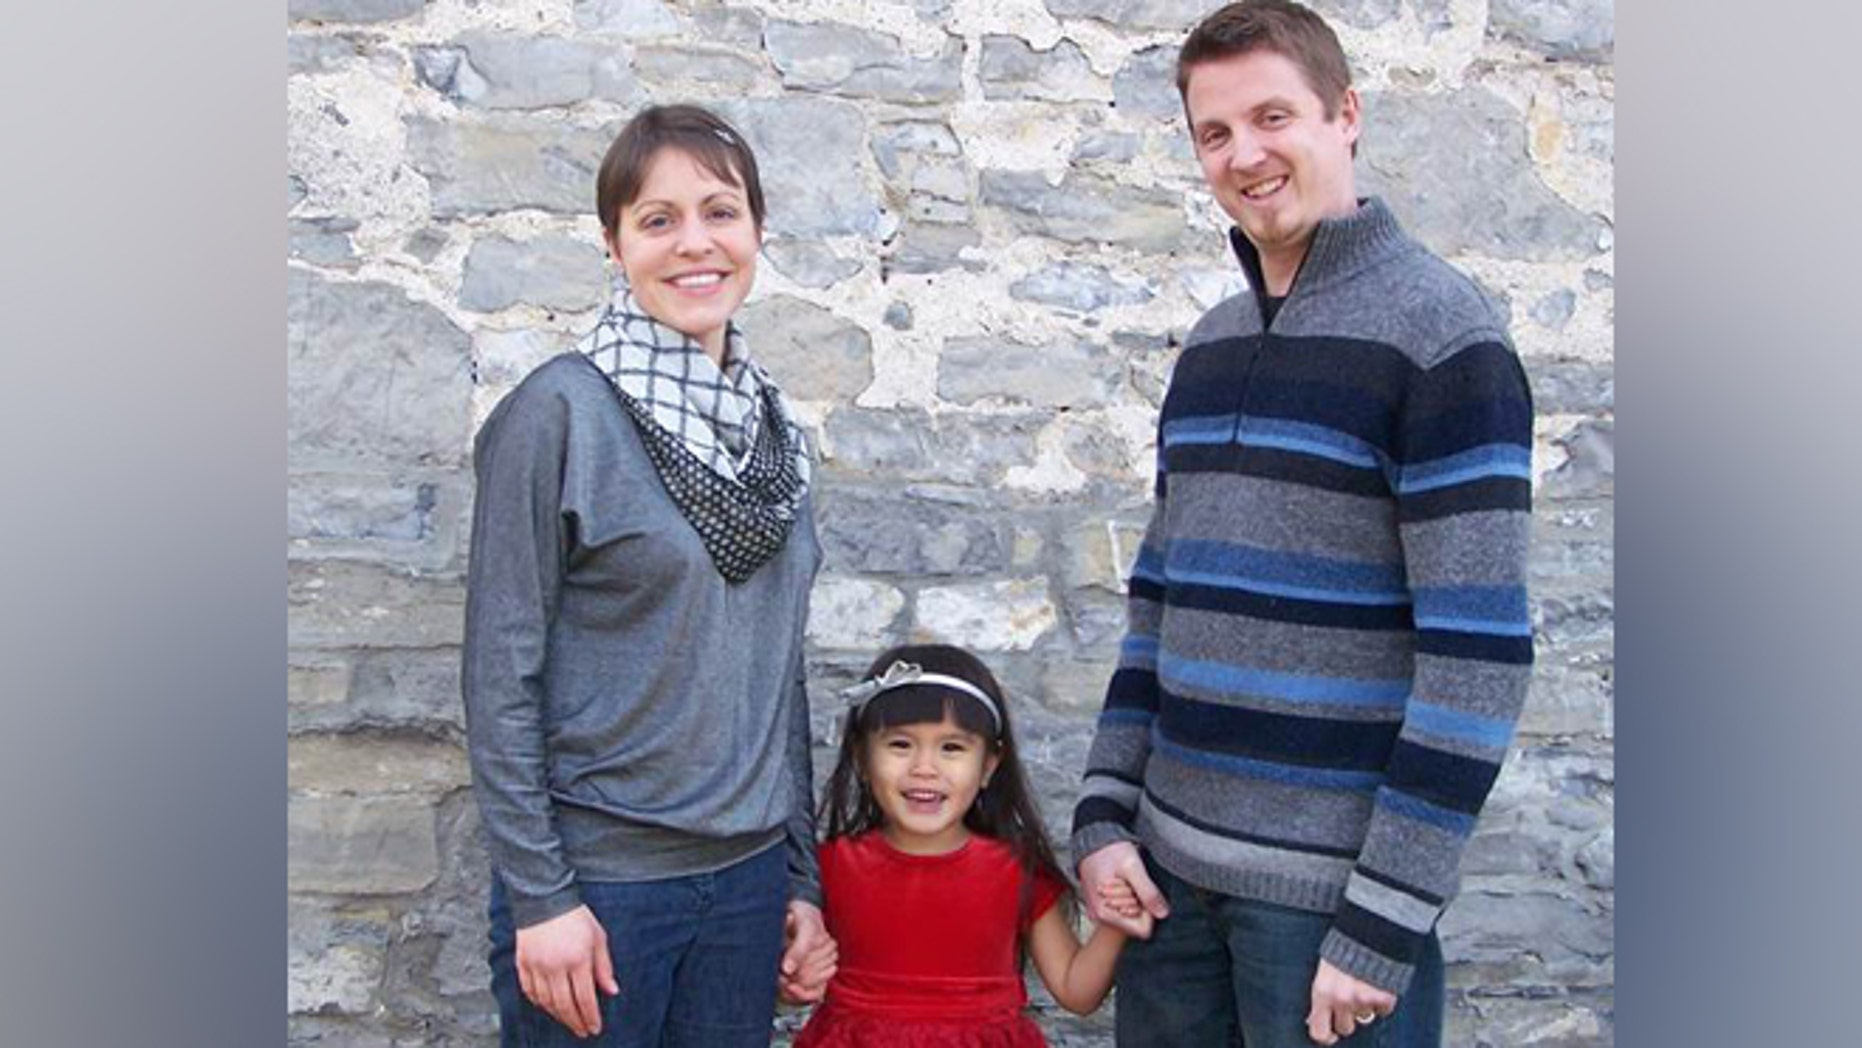 Stephanie and Ben Hawkins conceived their daughter using a donor embryo.